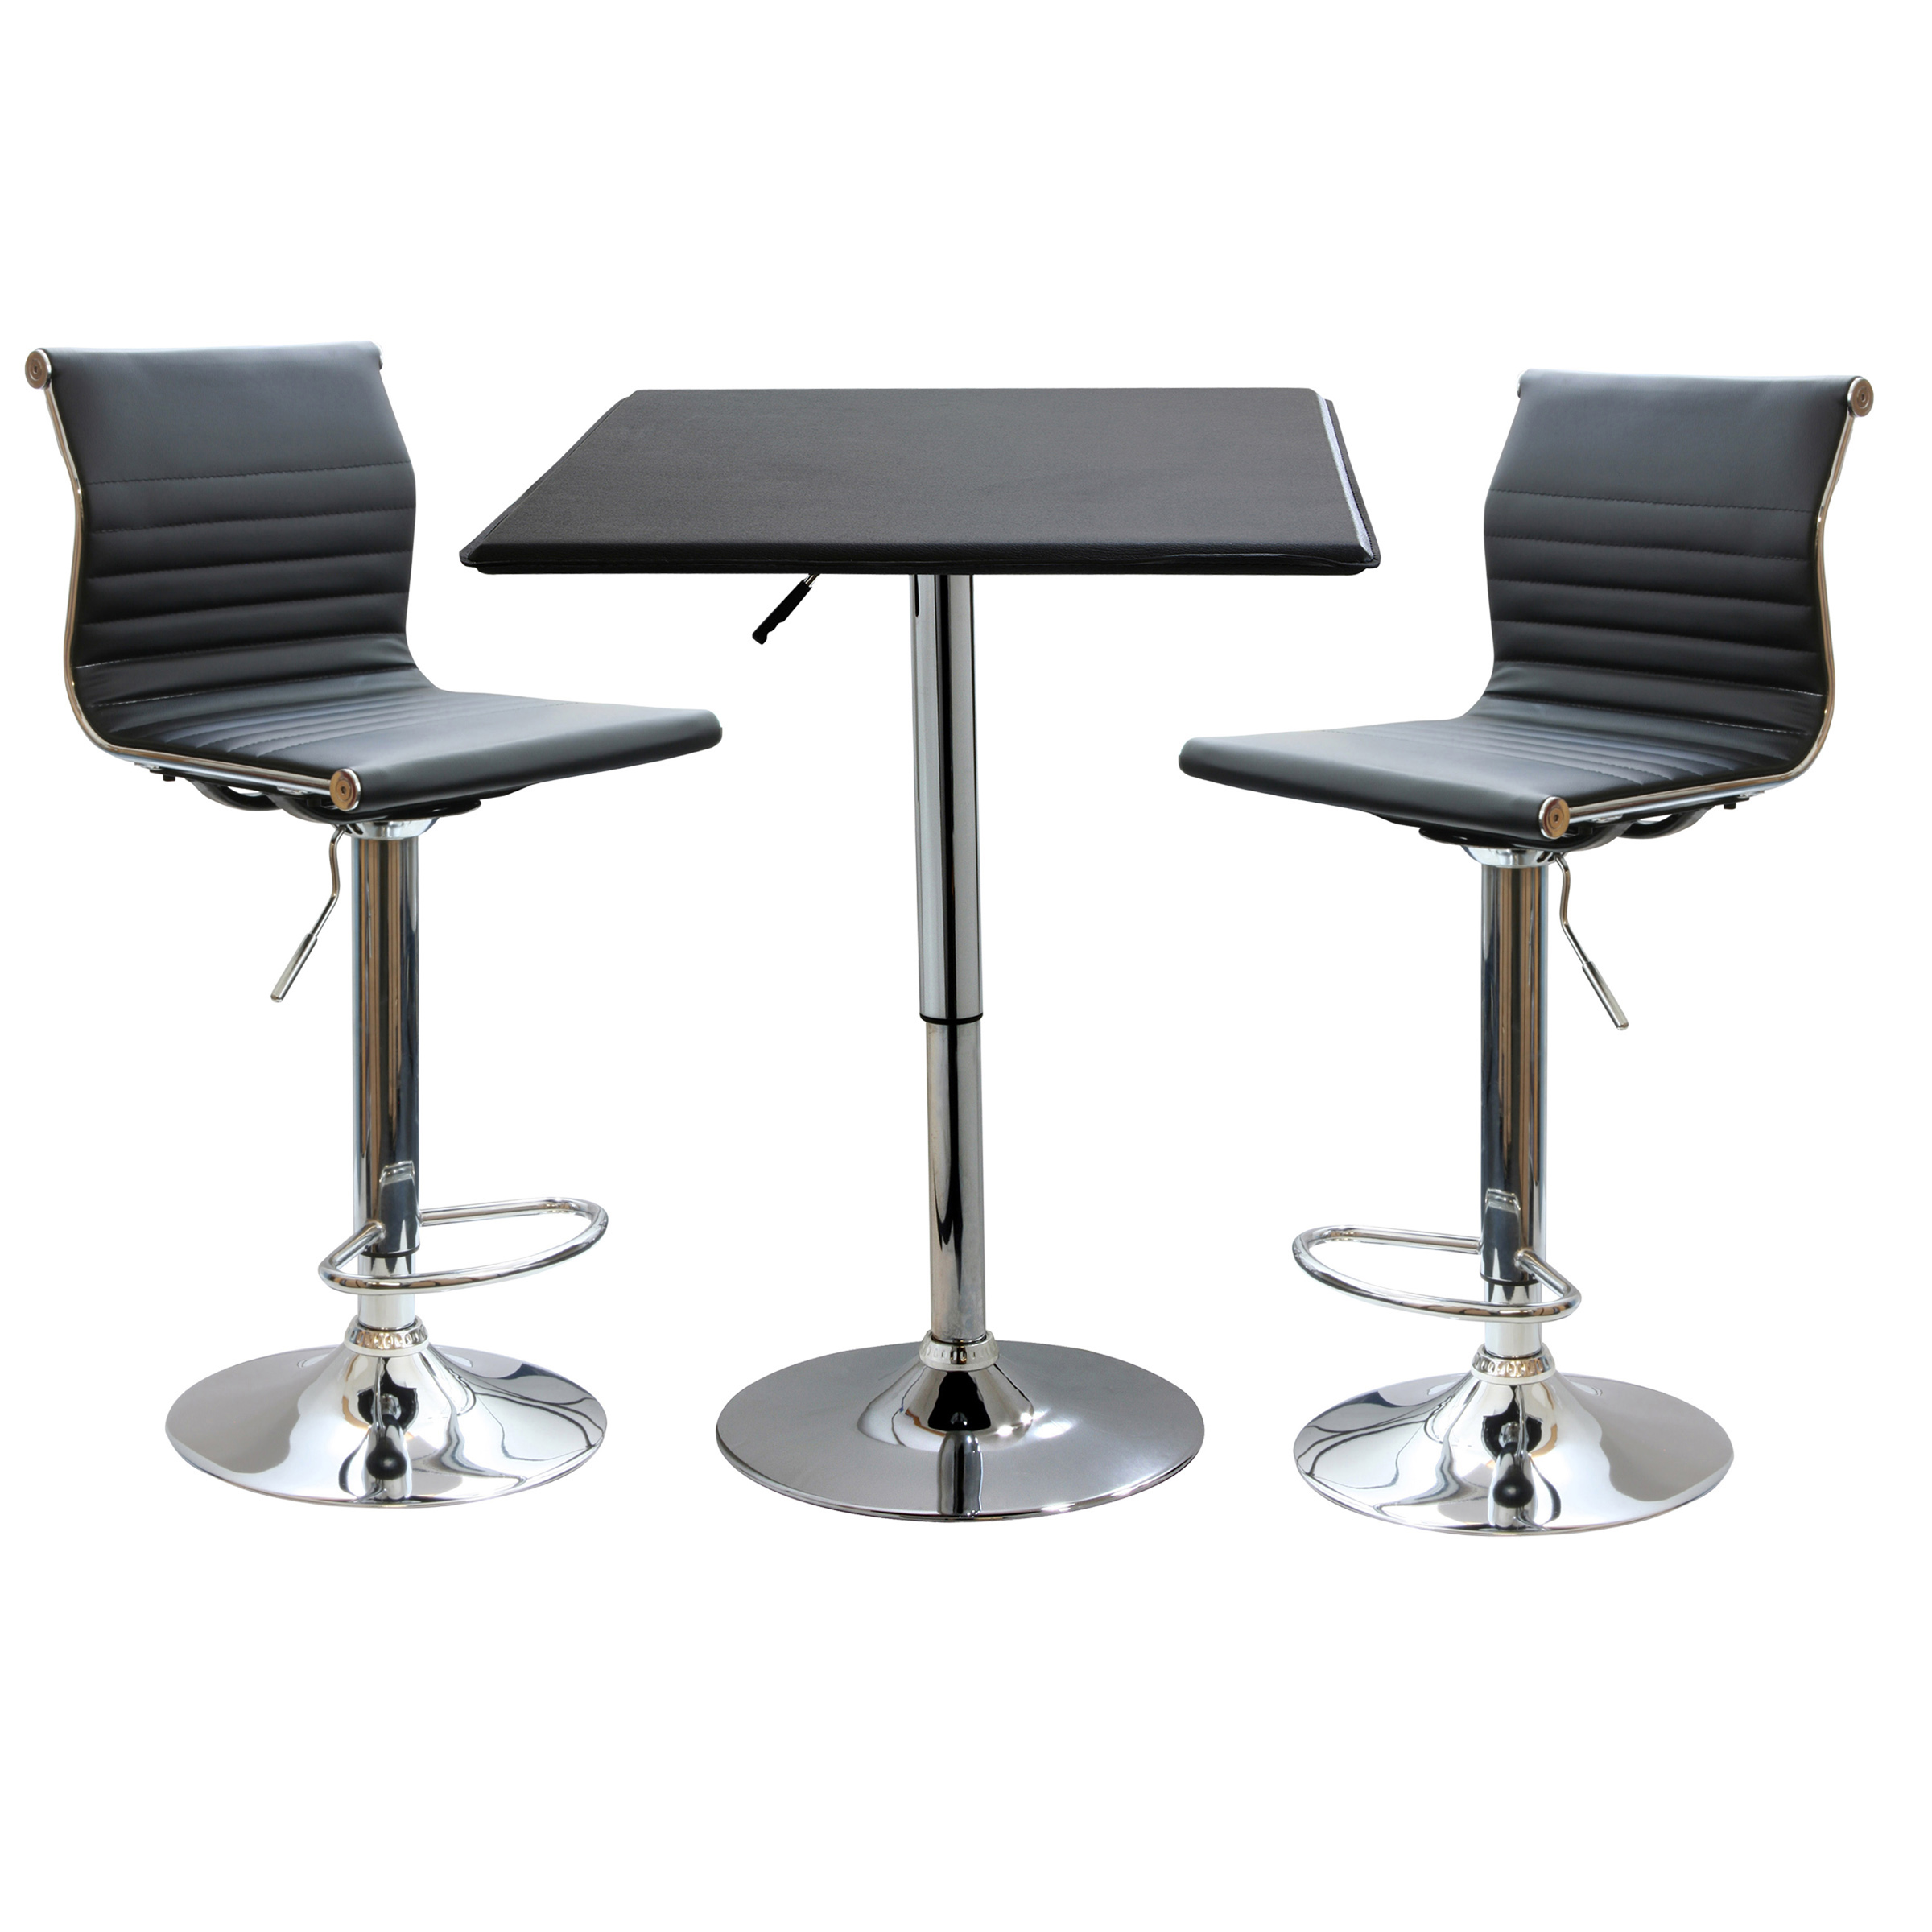 3 Piece Modern Sophisticated Black Silver Bistro Set Diner Pub Furniture